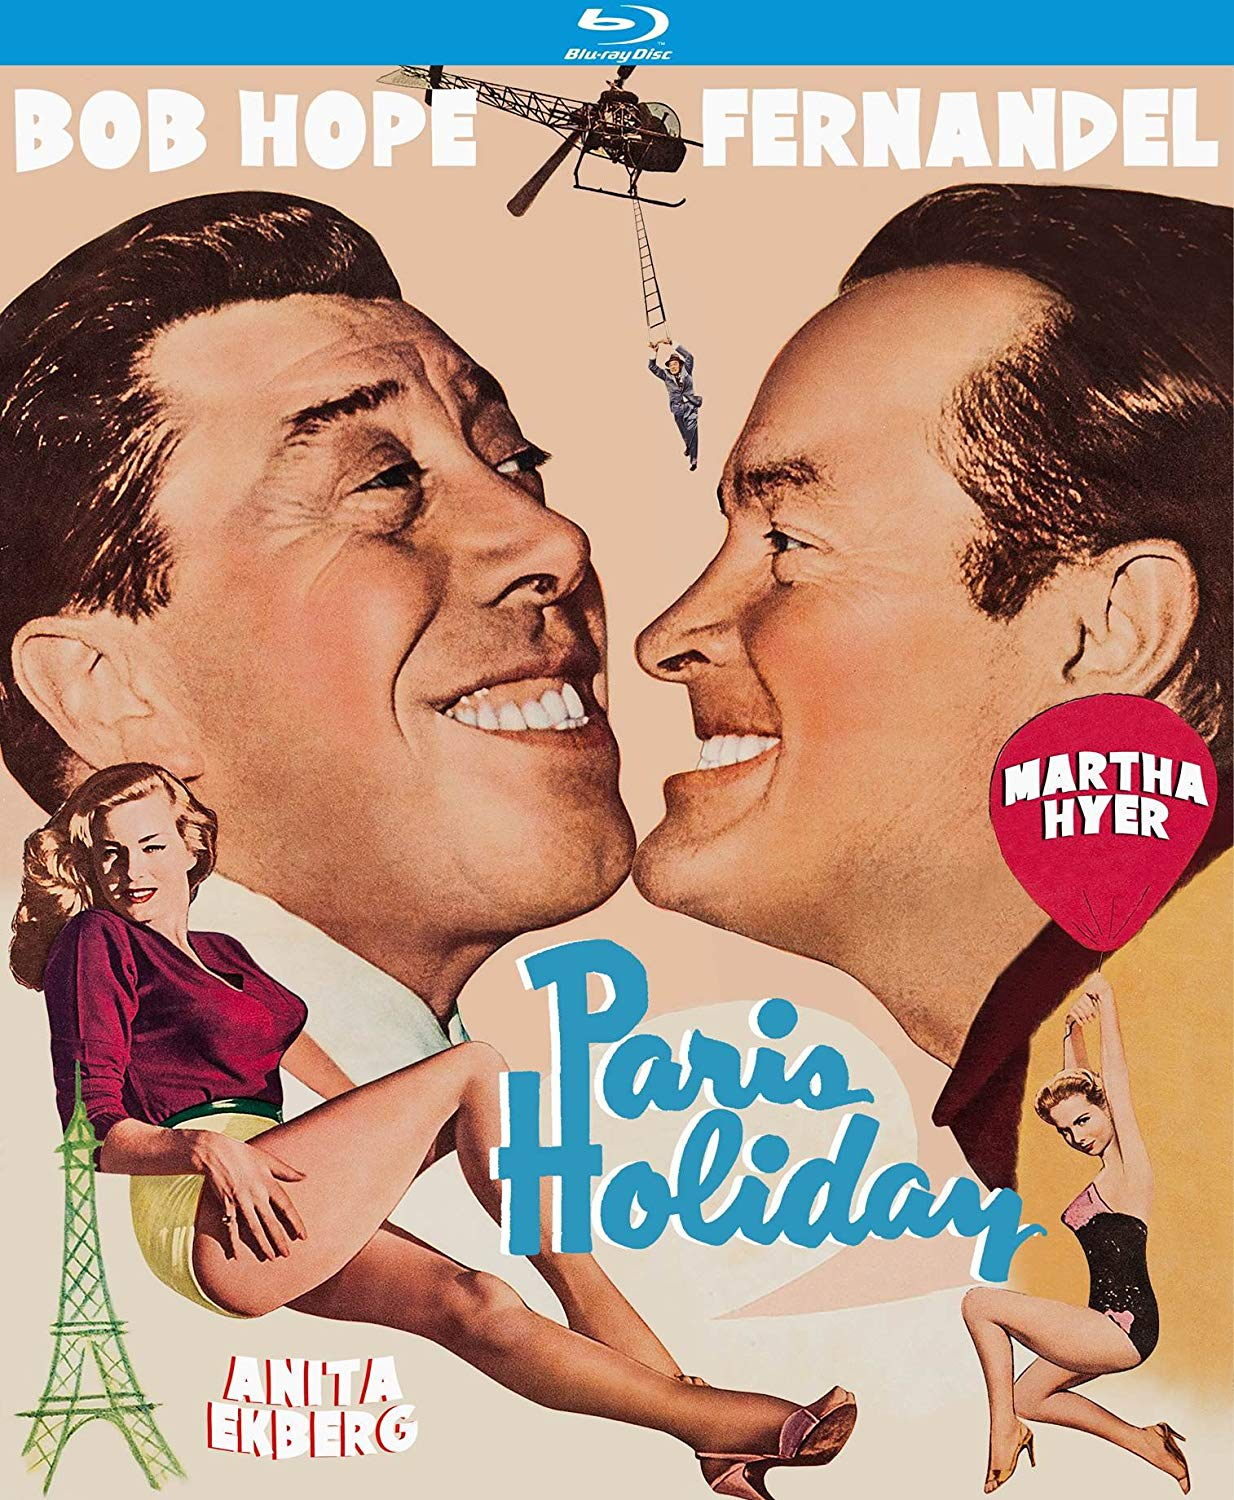 Paris Holiday (1958) starring Bob Hope, Martha Hyer, Anita Eckberg, Fernydel, Preston Sturges